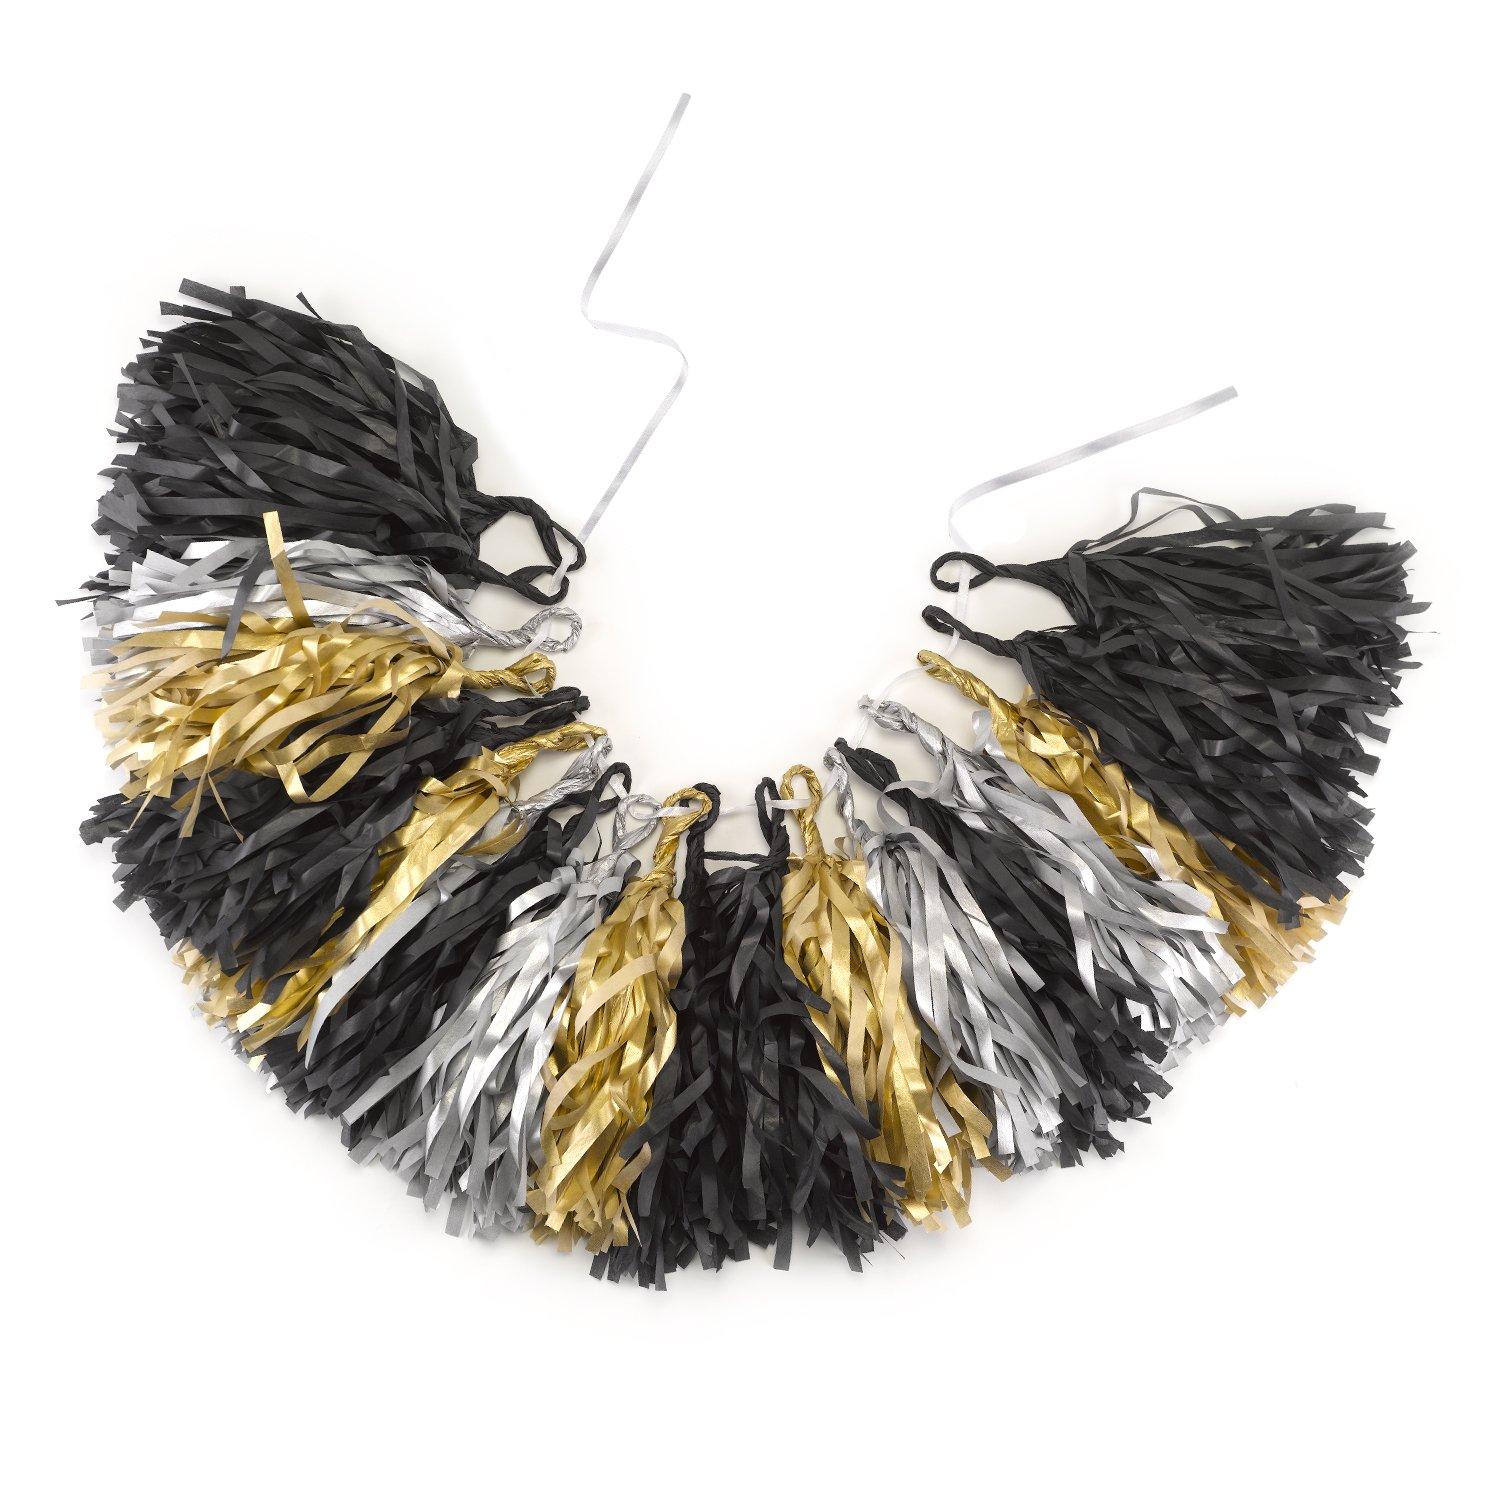 Hortense B. Hewitt Dramatic Glam Tassel Party Garland, Multicolor 20903